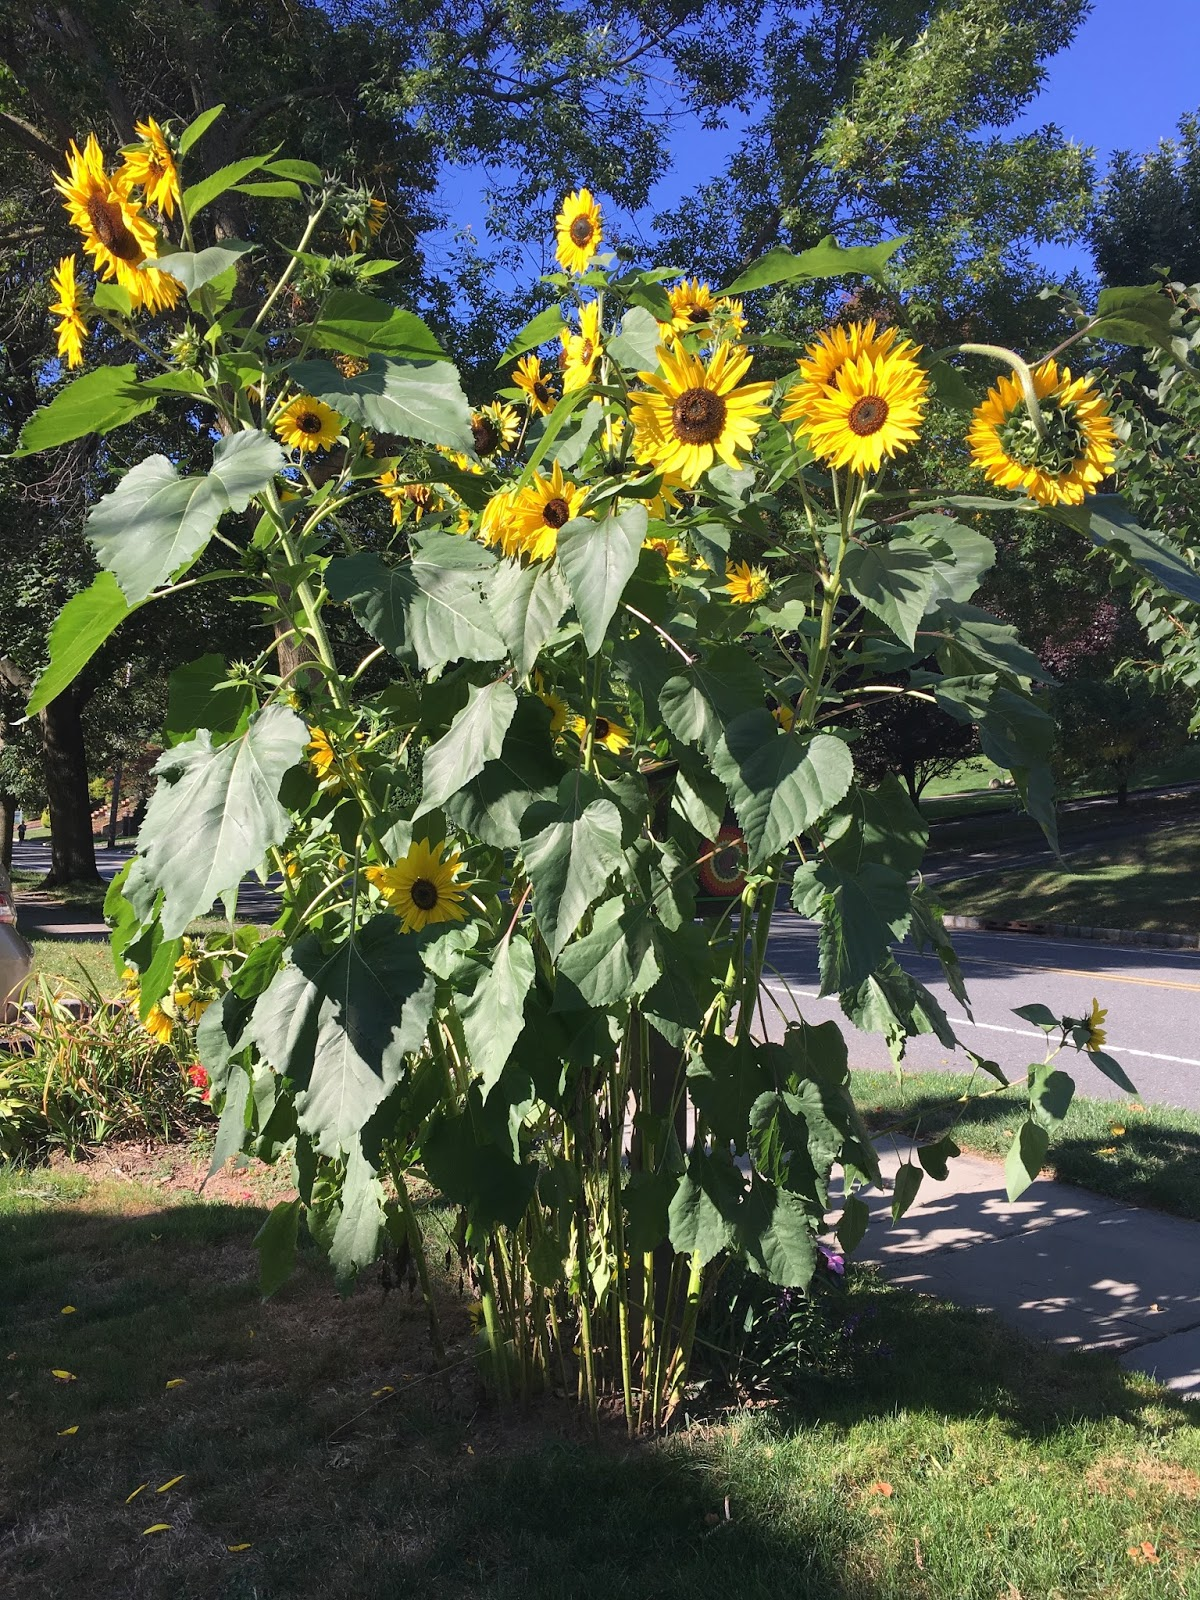 Mind body spirit odyssey after a long summer my sunflowers are finally in full bloom boldly towering over everything else in the front yard its nice to watch the smiles on izmirmasajfo